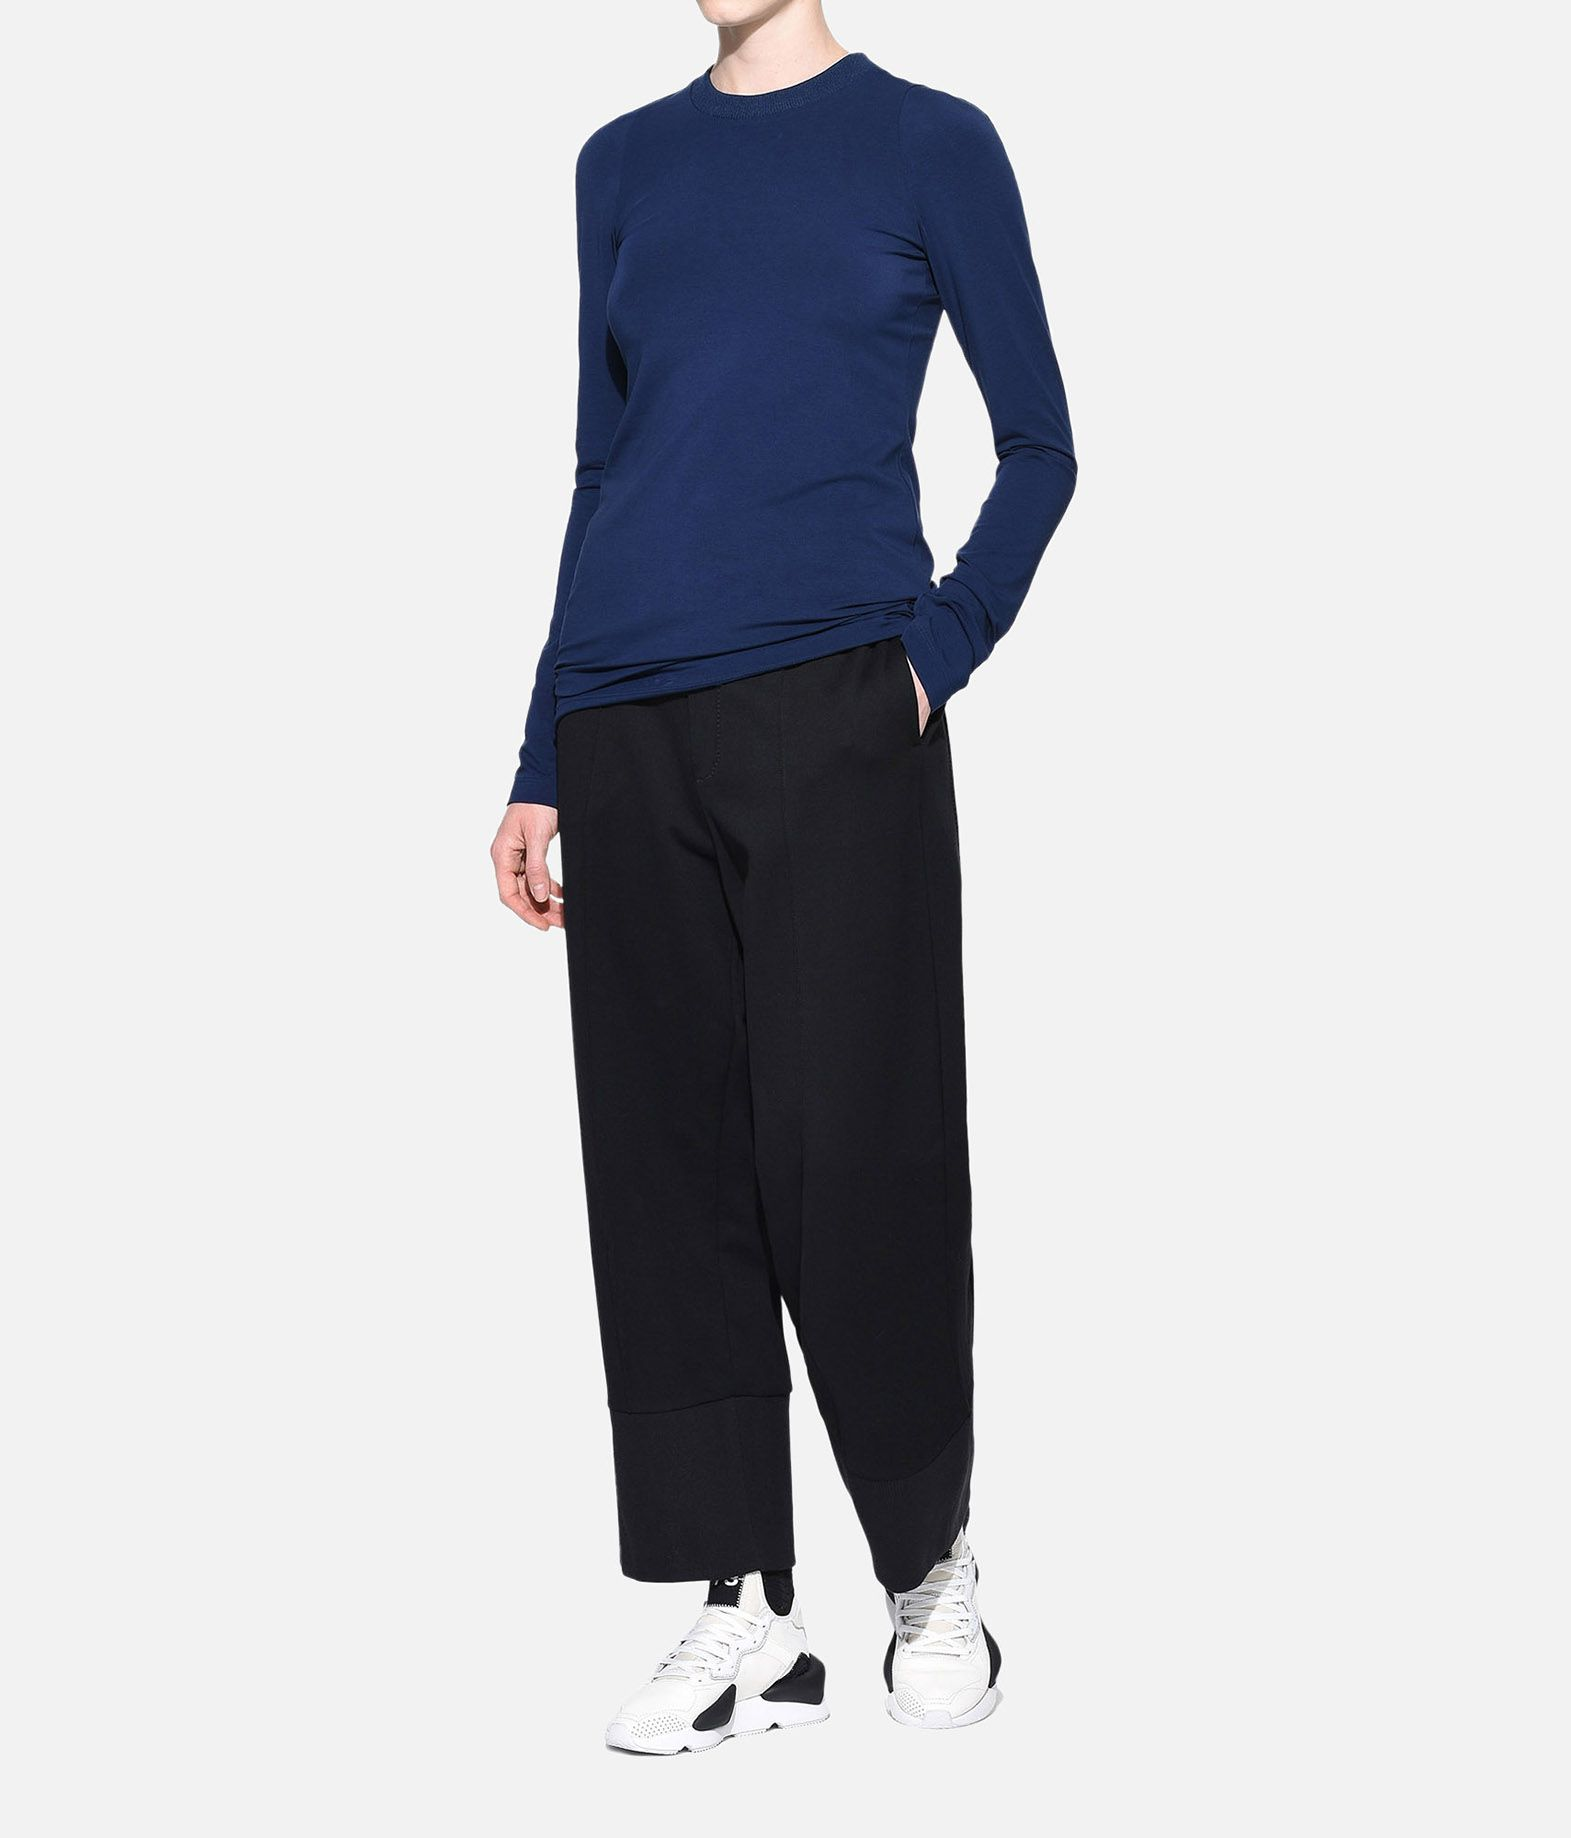 Y-3 Y-3 Prime Tee Long sleeve t-shirt Woman a